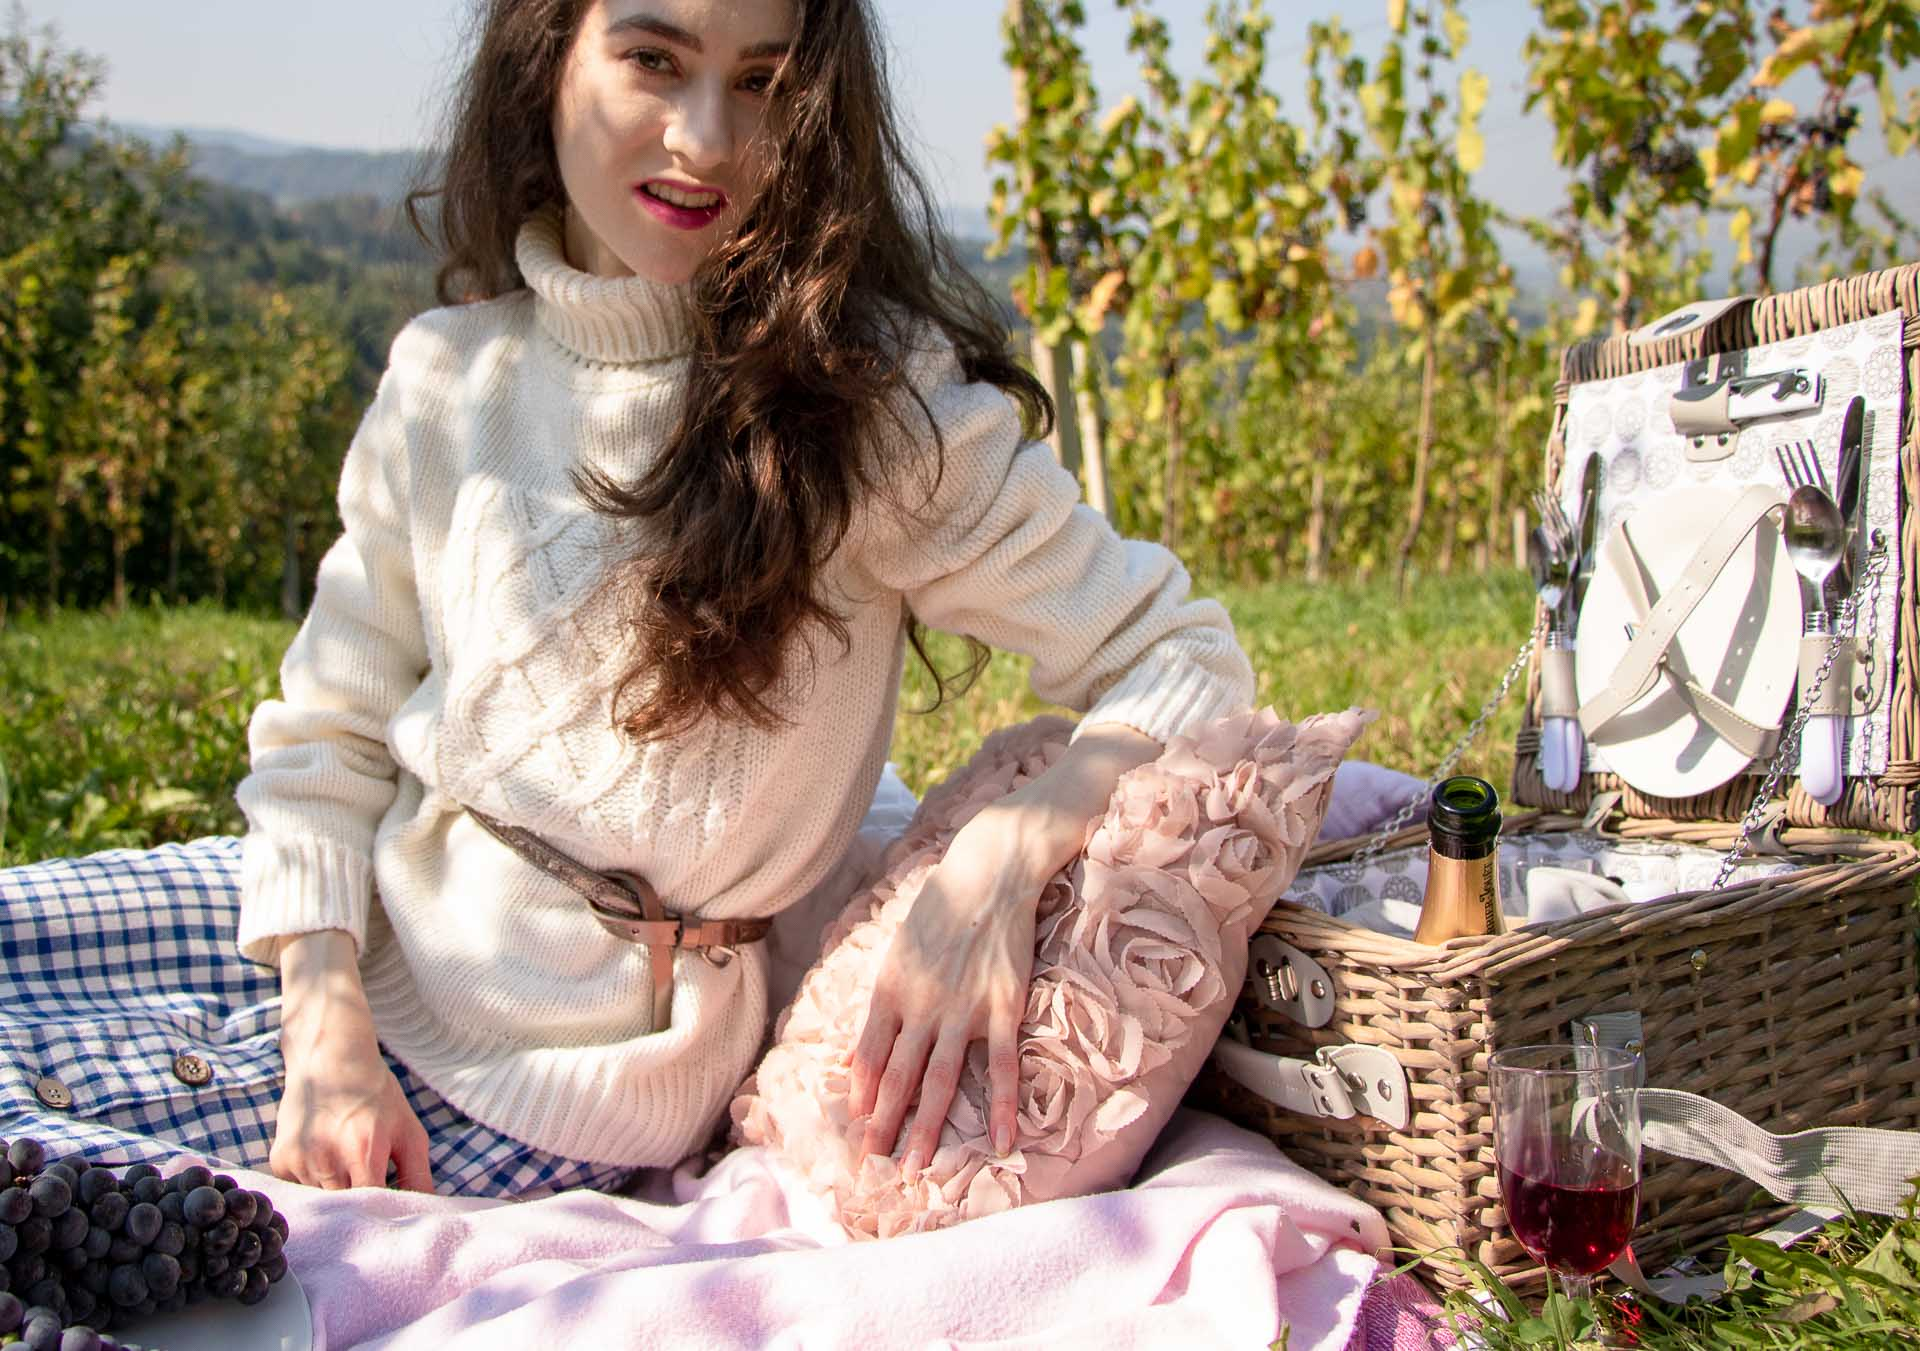 Beautiful Slovenian Fashion Blogger Veronika Lipar of Brunette from Wall wearing blue and white check button down Mango dress, oversized white turtleneck sweater, dangling belt, white Ganni cowboy boots, for autumn picnic in vineyard